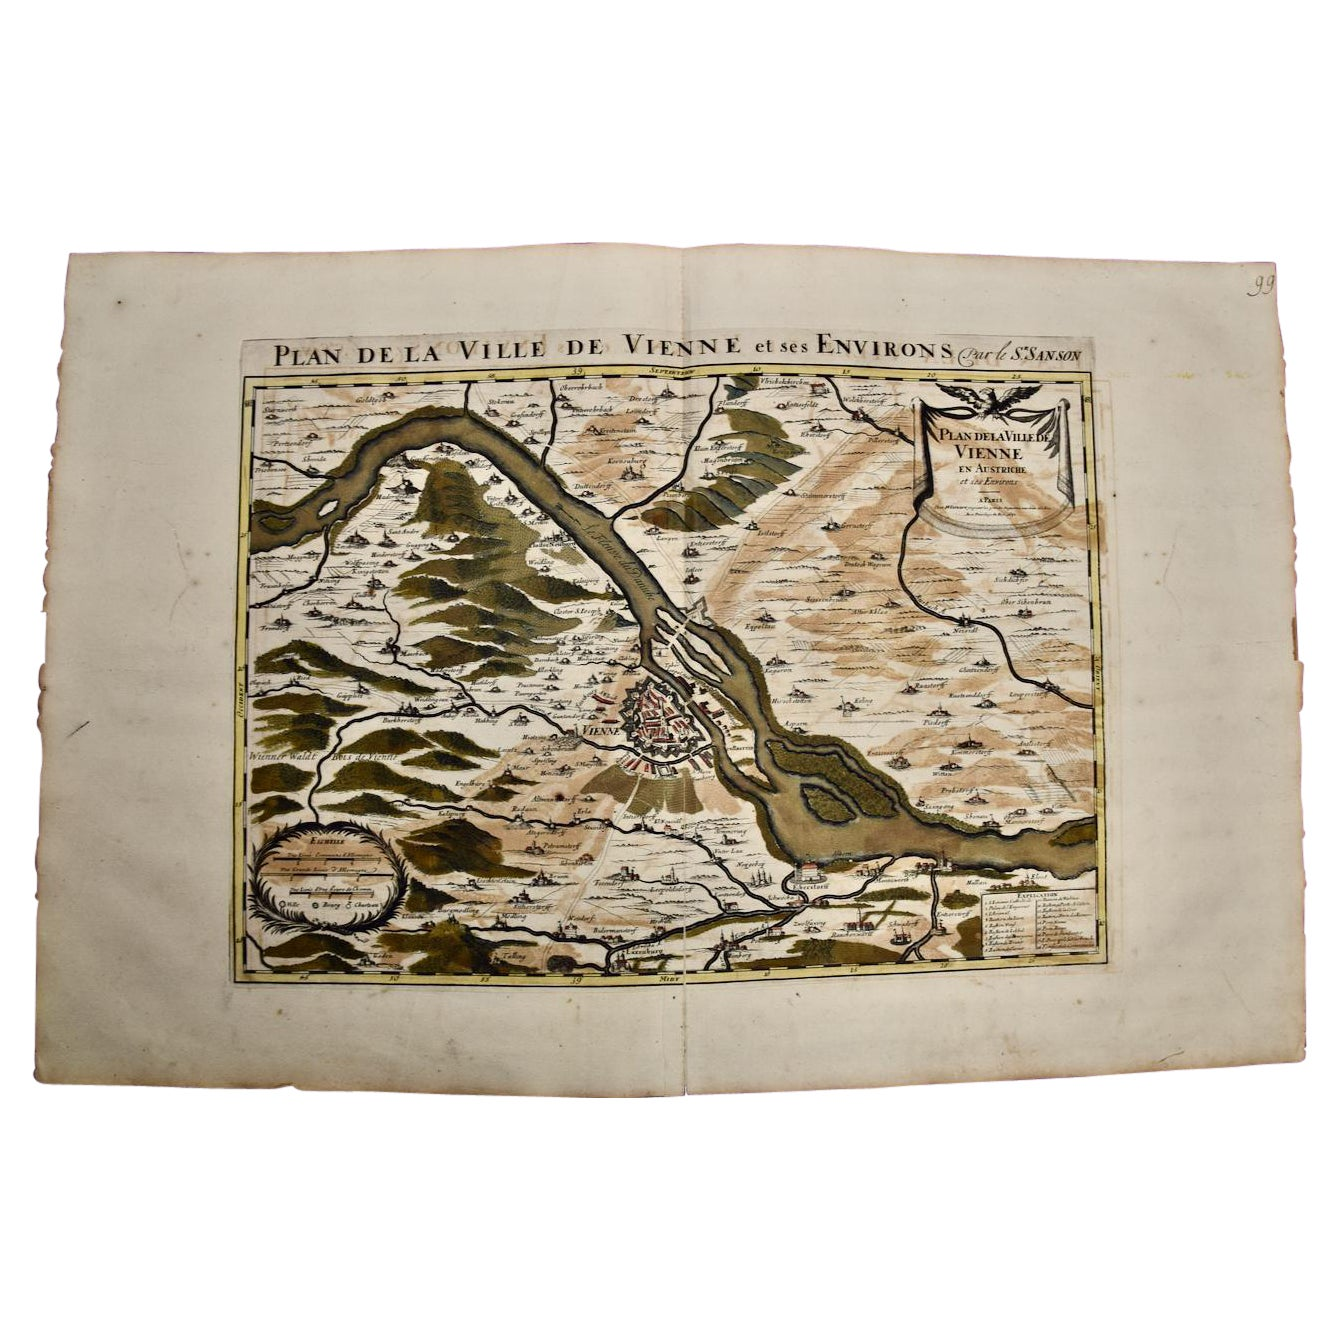 Large 17th Century Hand-Colored Map of Vienna, Austria by Sanson and Jaillot